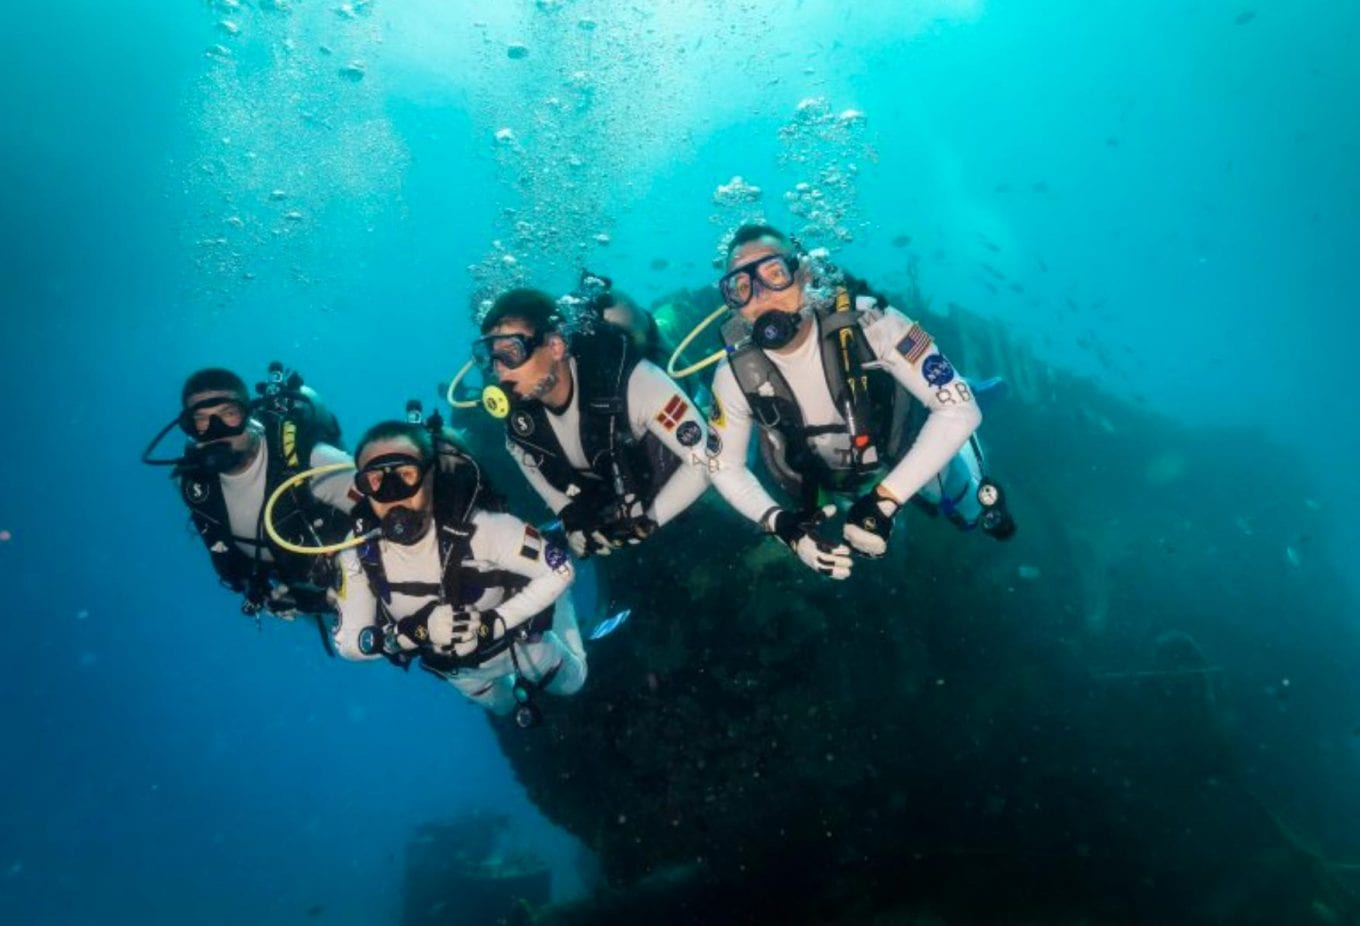 neemo undersea mission photography by mark widick